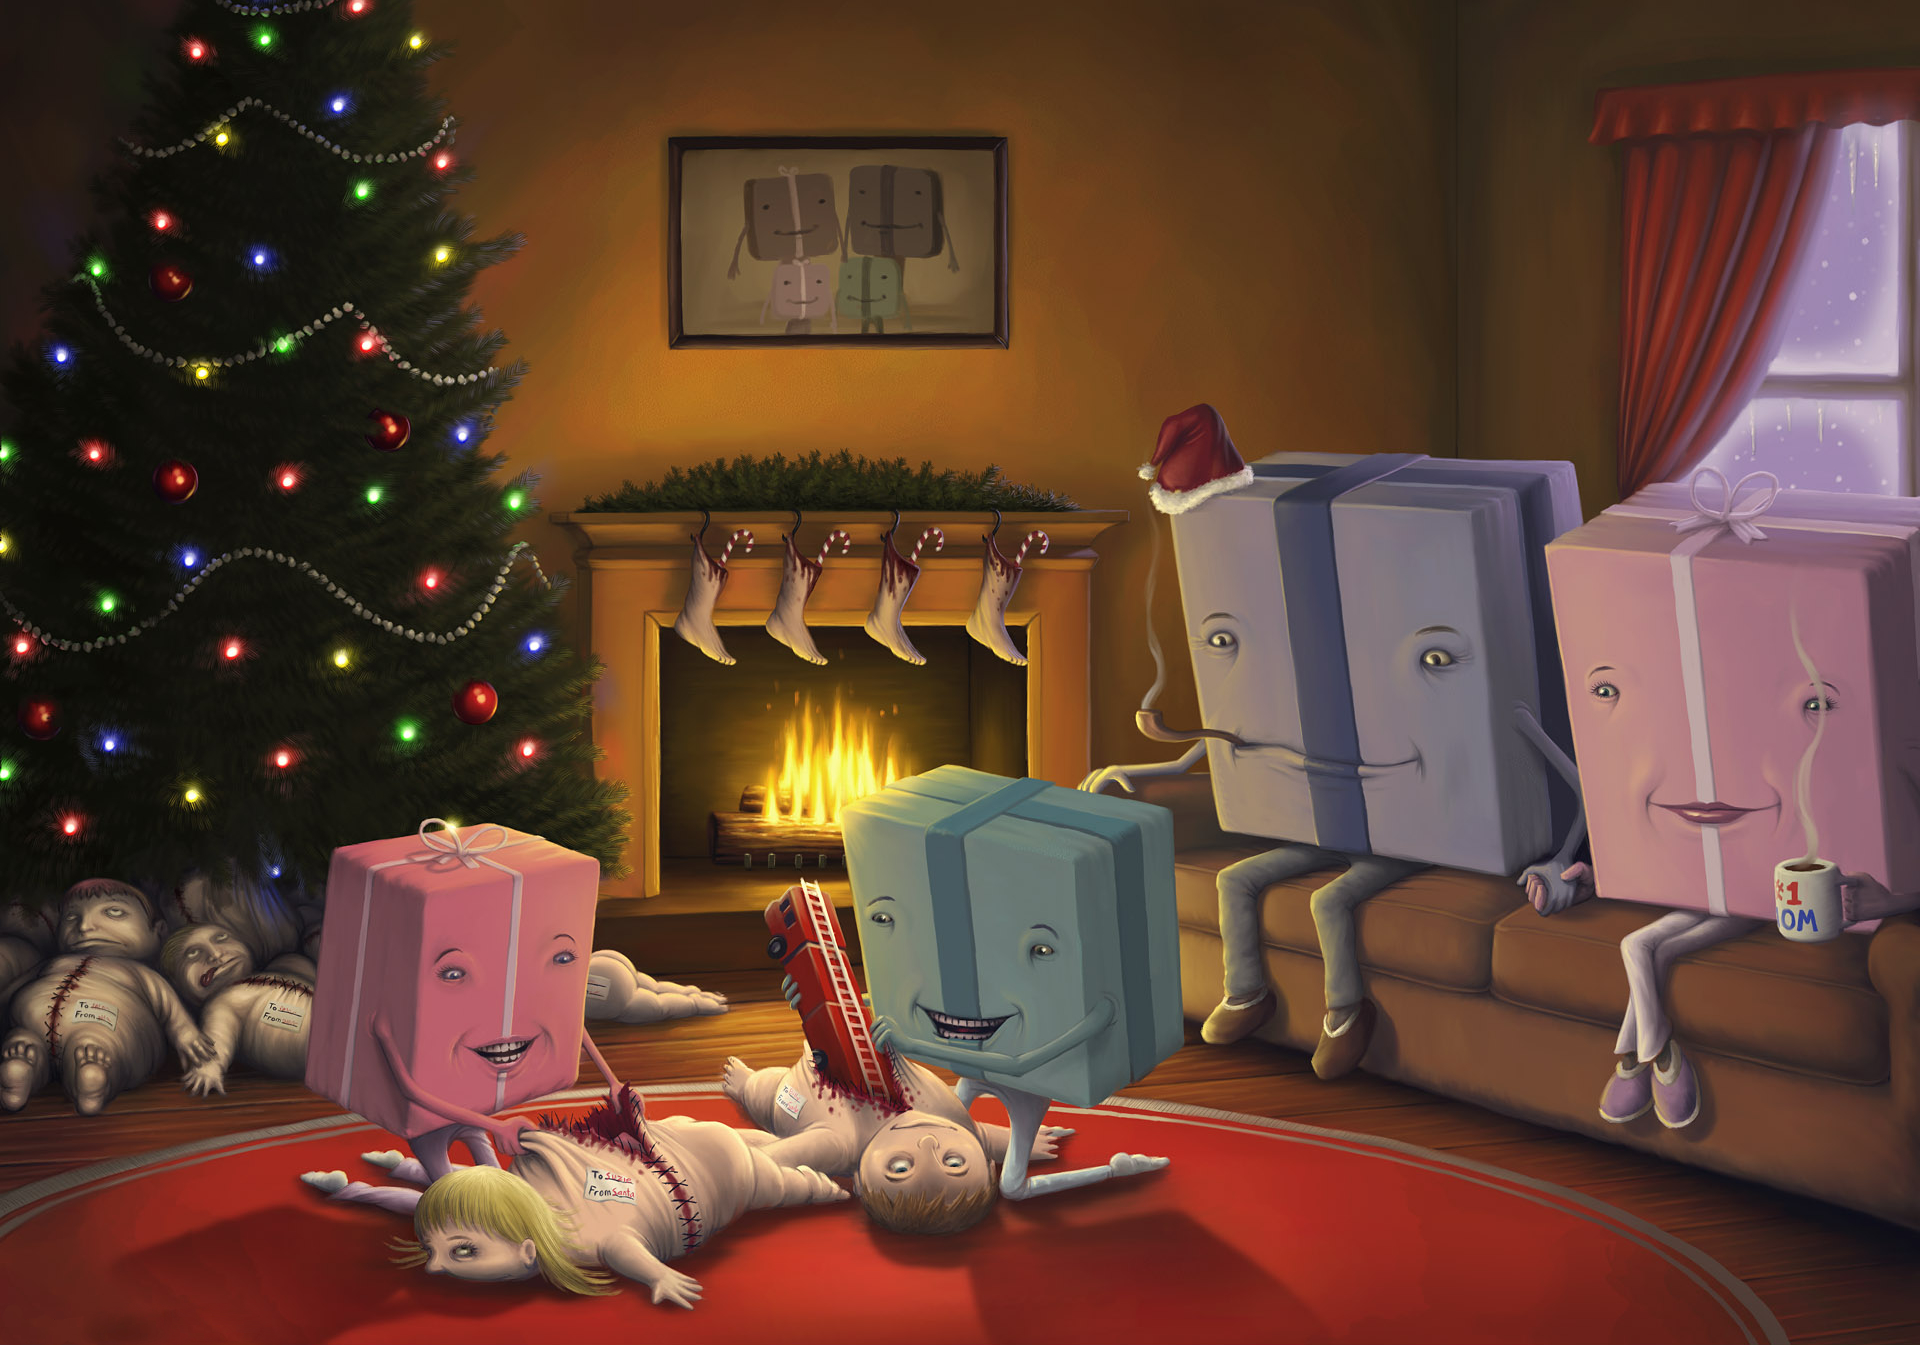 dead Kids Christmas disturbing HD Wallpaper